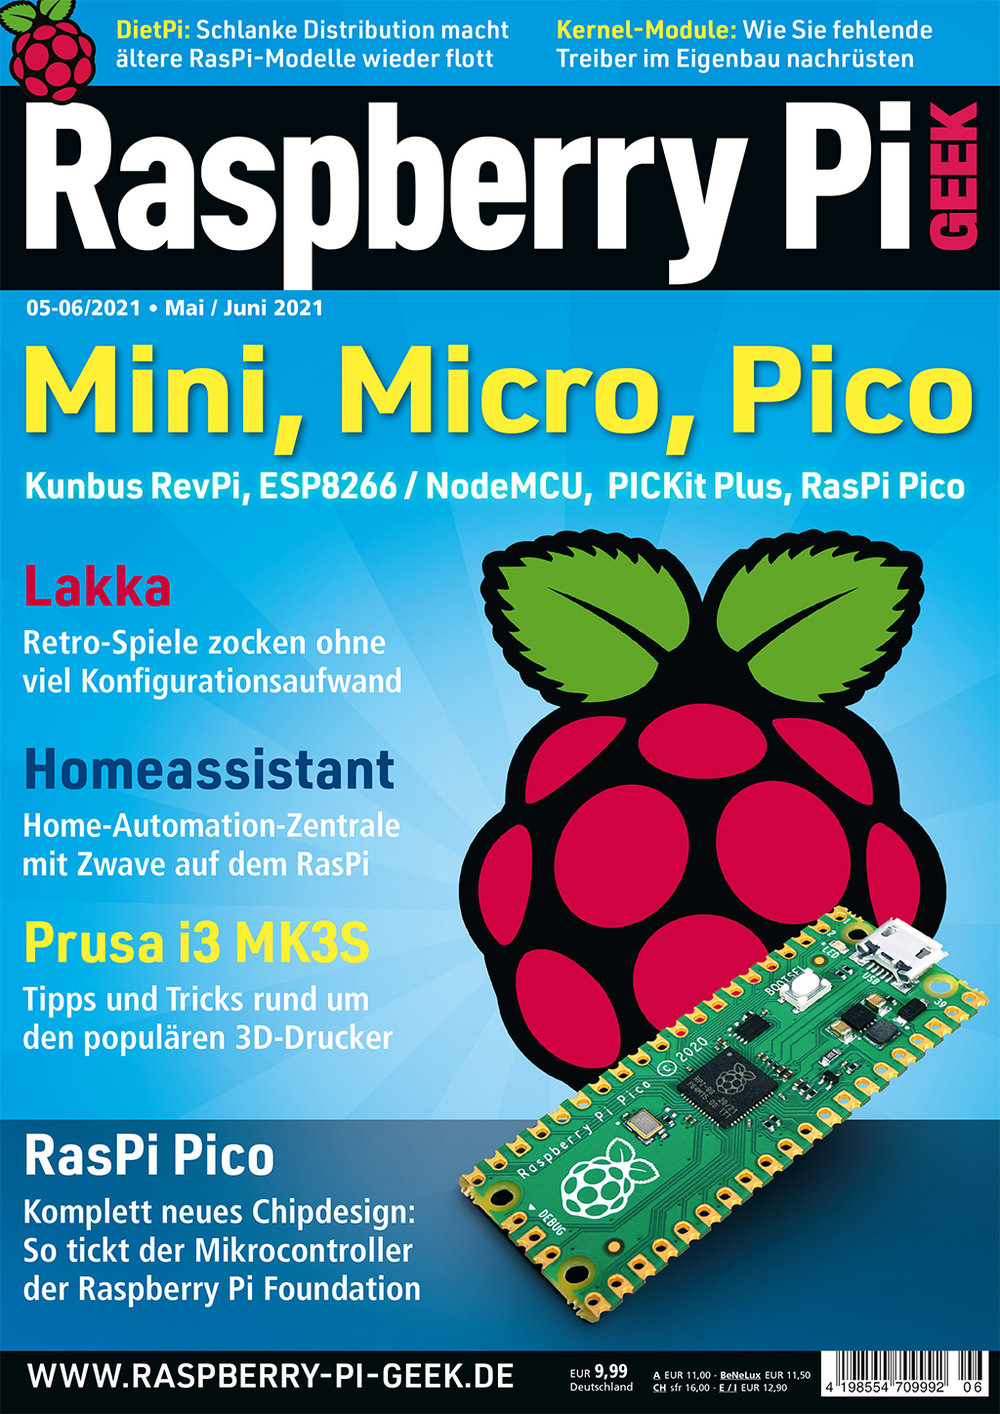 Raspberry Pi Geek Digital Jahresabo-Upgrade